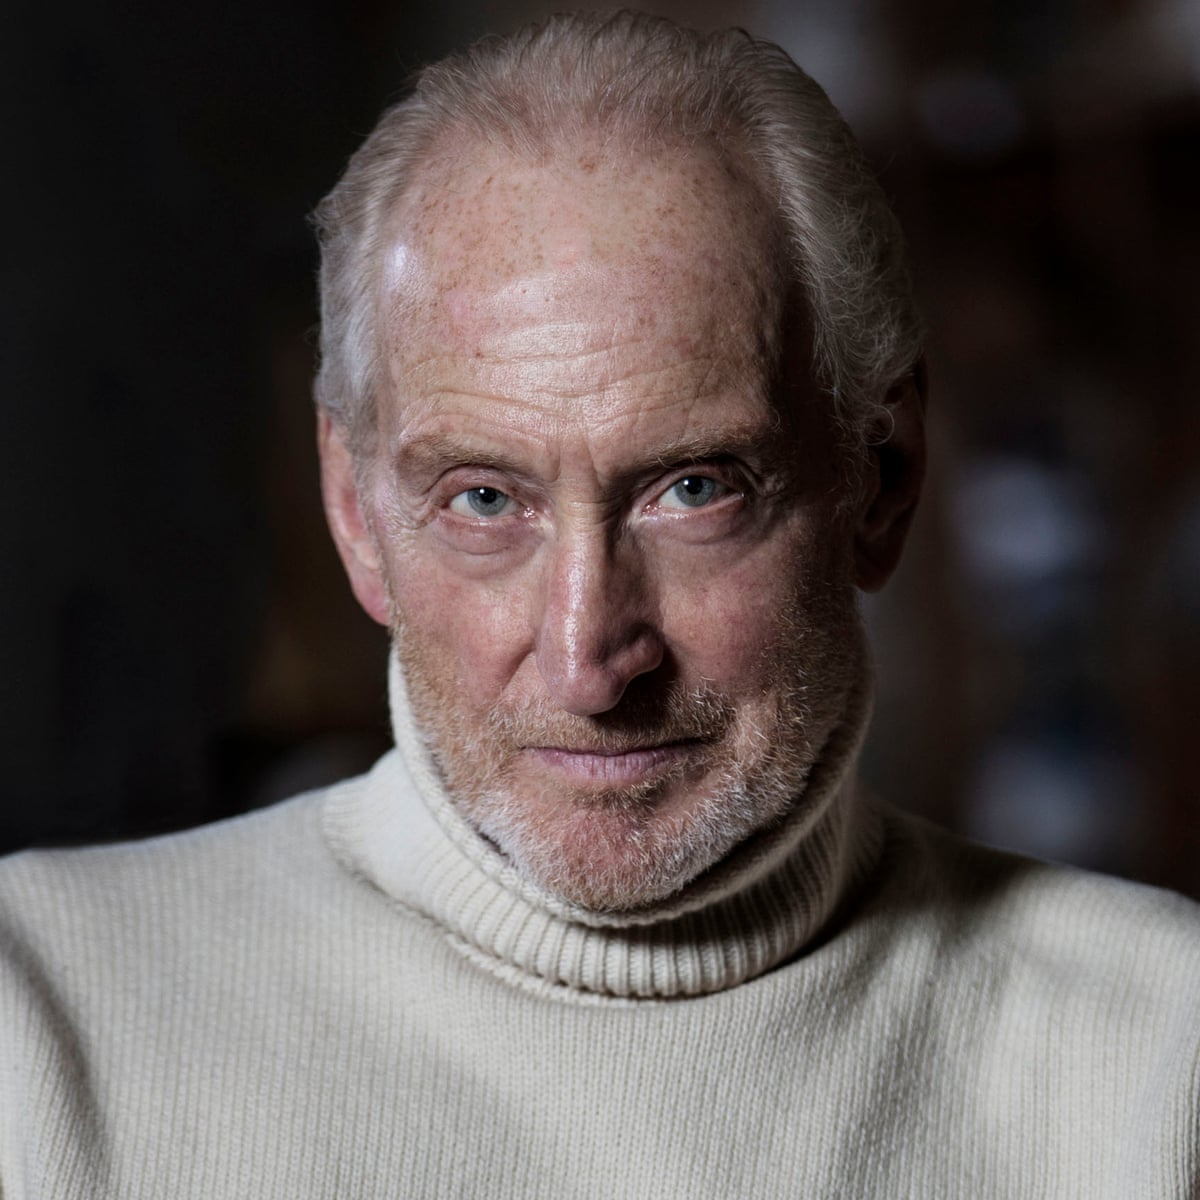 Who Do You Think You Are? review – Charles Dance adds his tearful family tale | Television | The Guardian